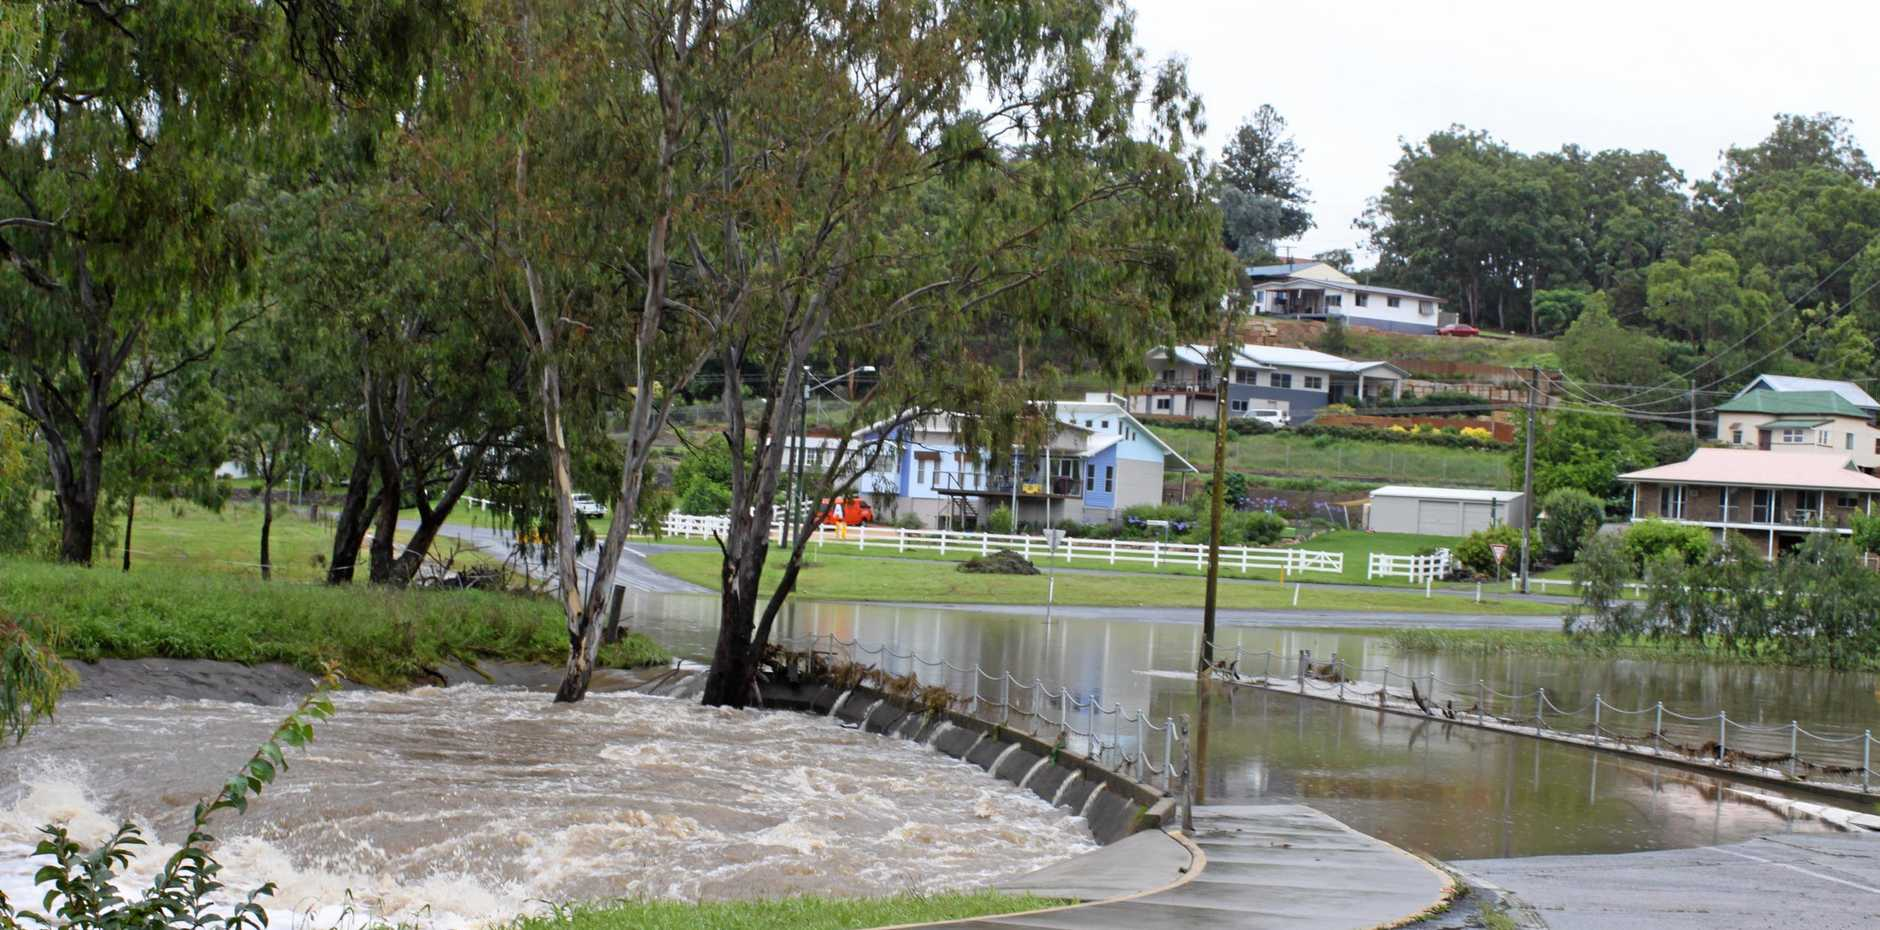 Overflowing: The Park Road Weir Bridge during the 2009 flood.